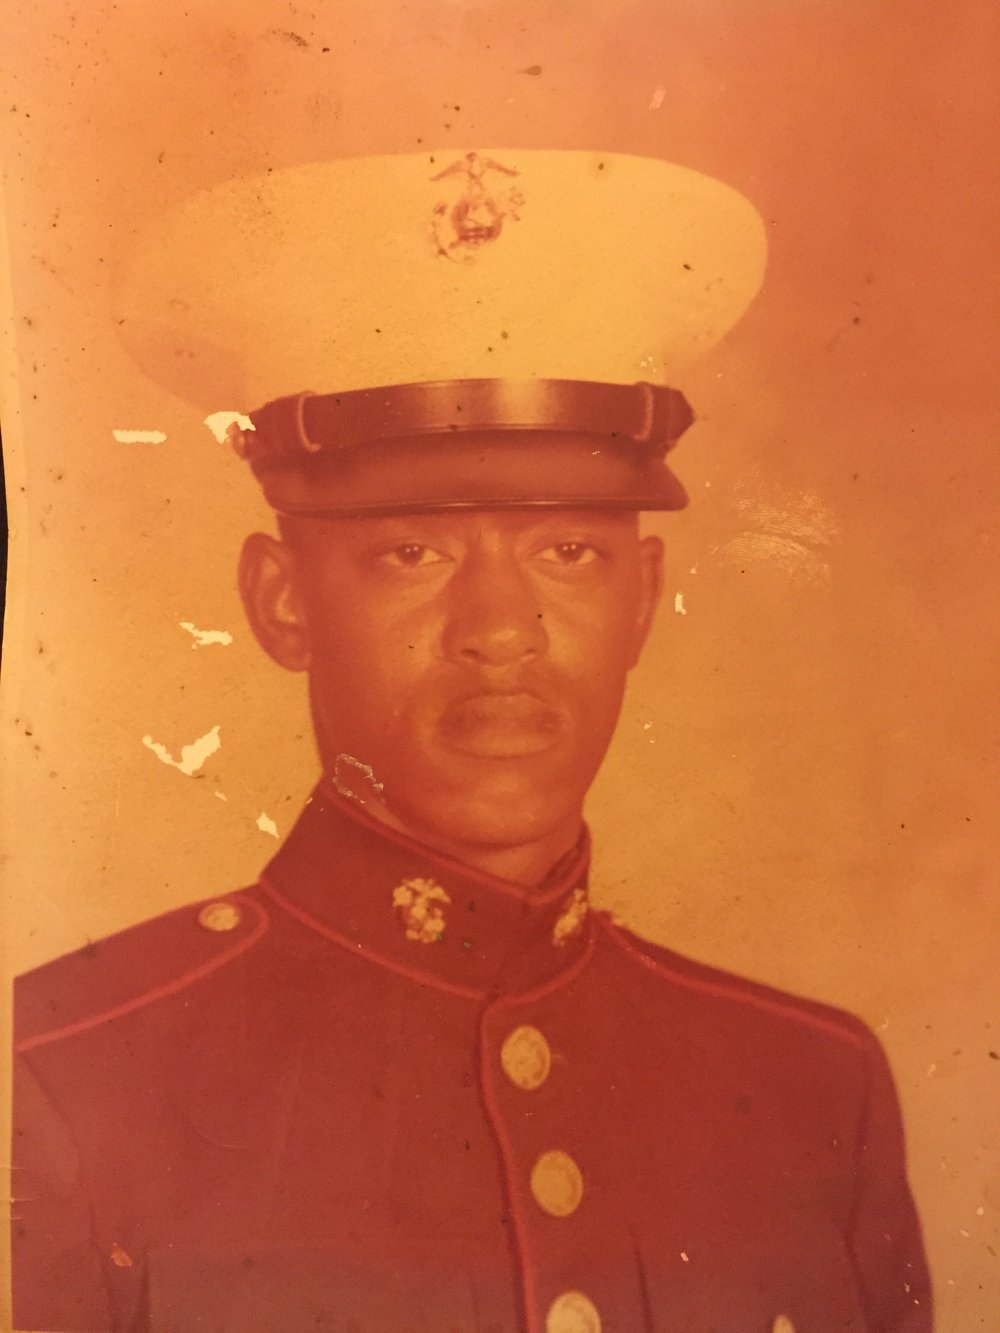 That's my dad in that uniform he was so proud of! Handsome guy, right?